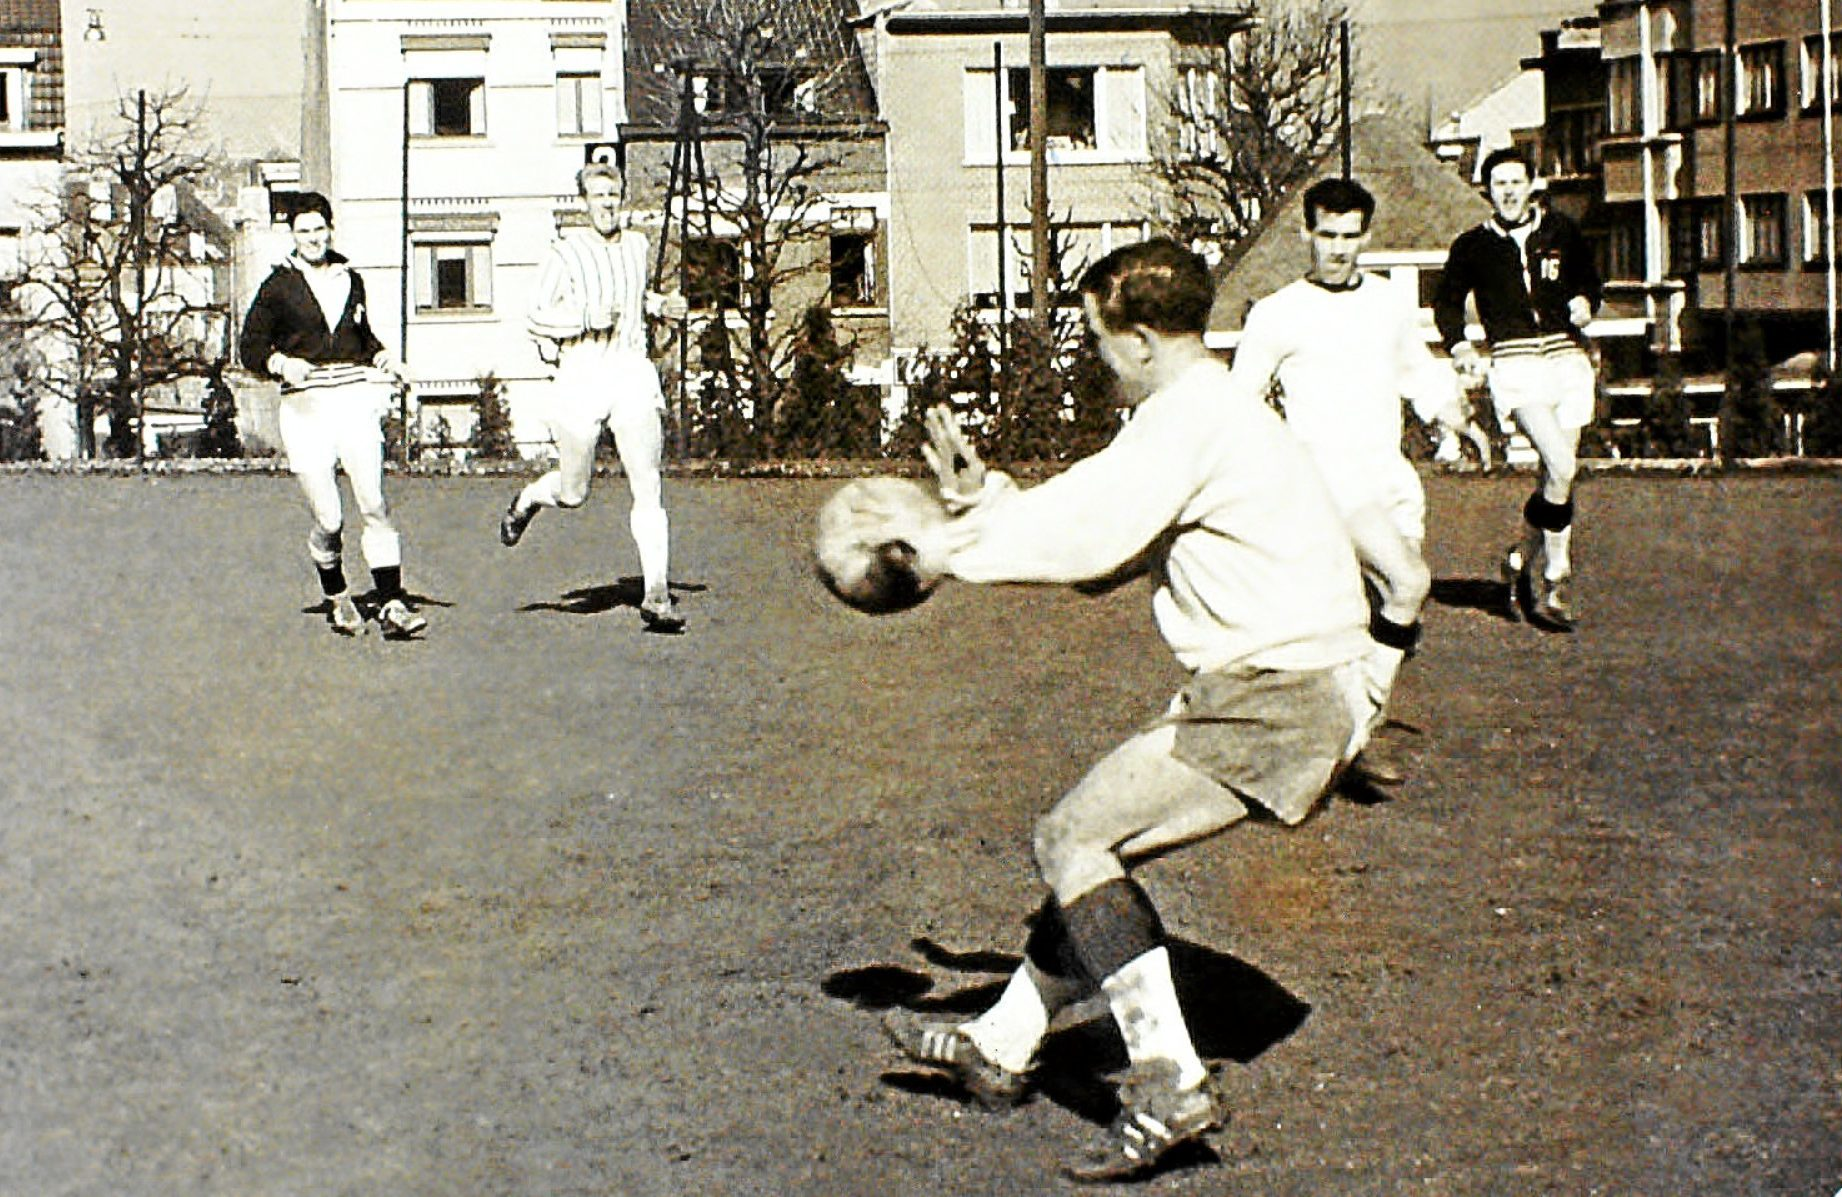 A photo relating to Dundee FC's European Cup run in season 1963-64.